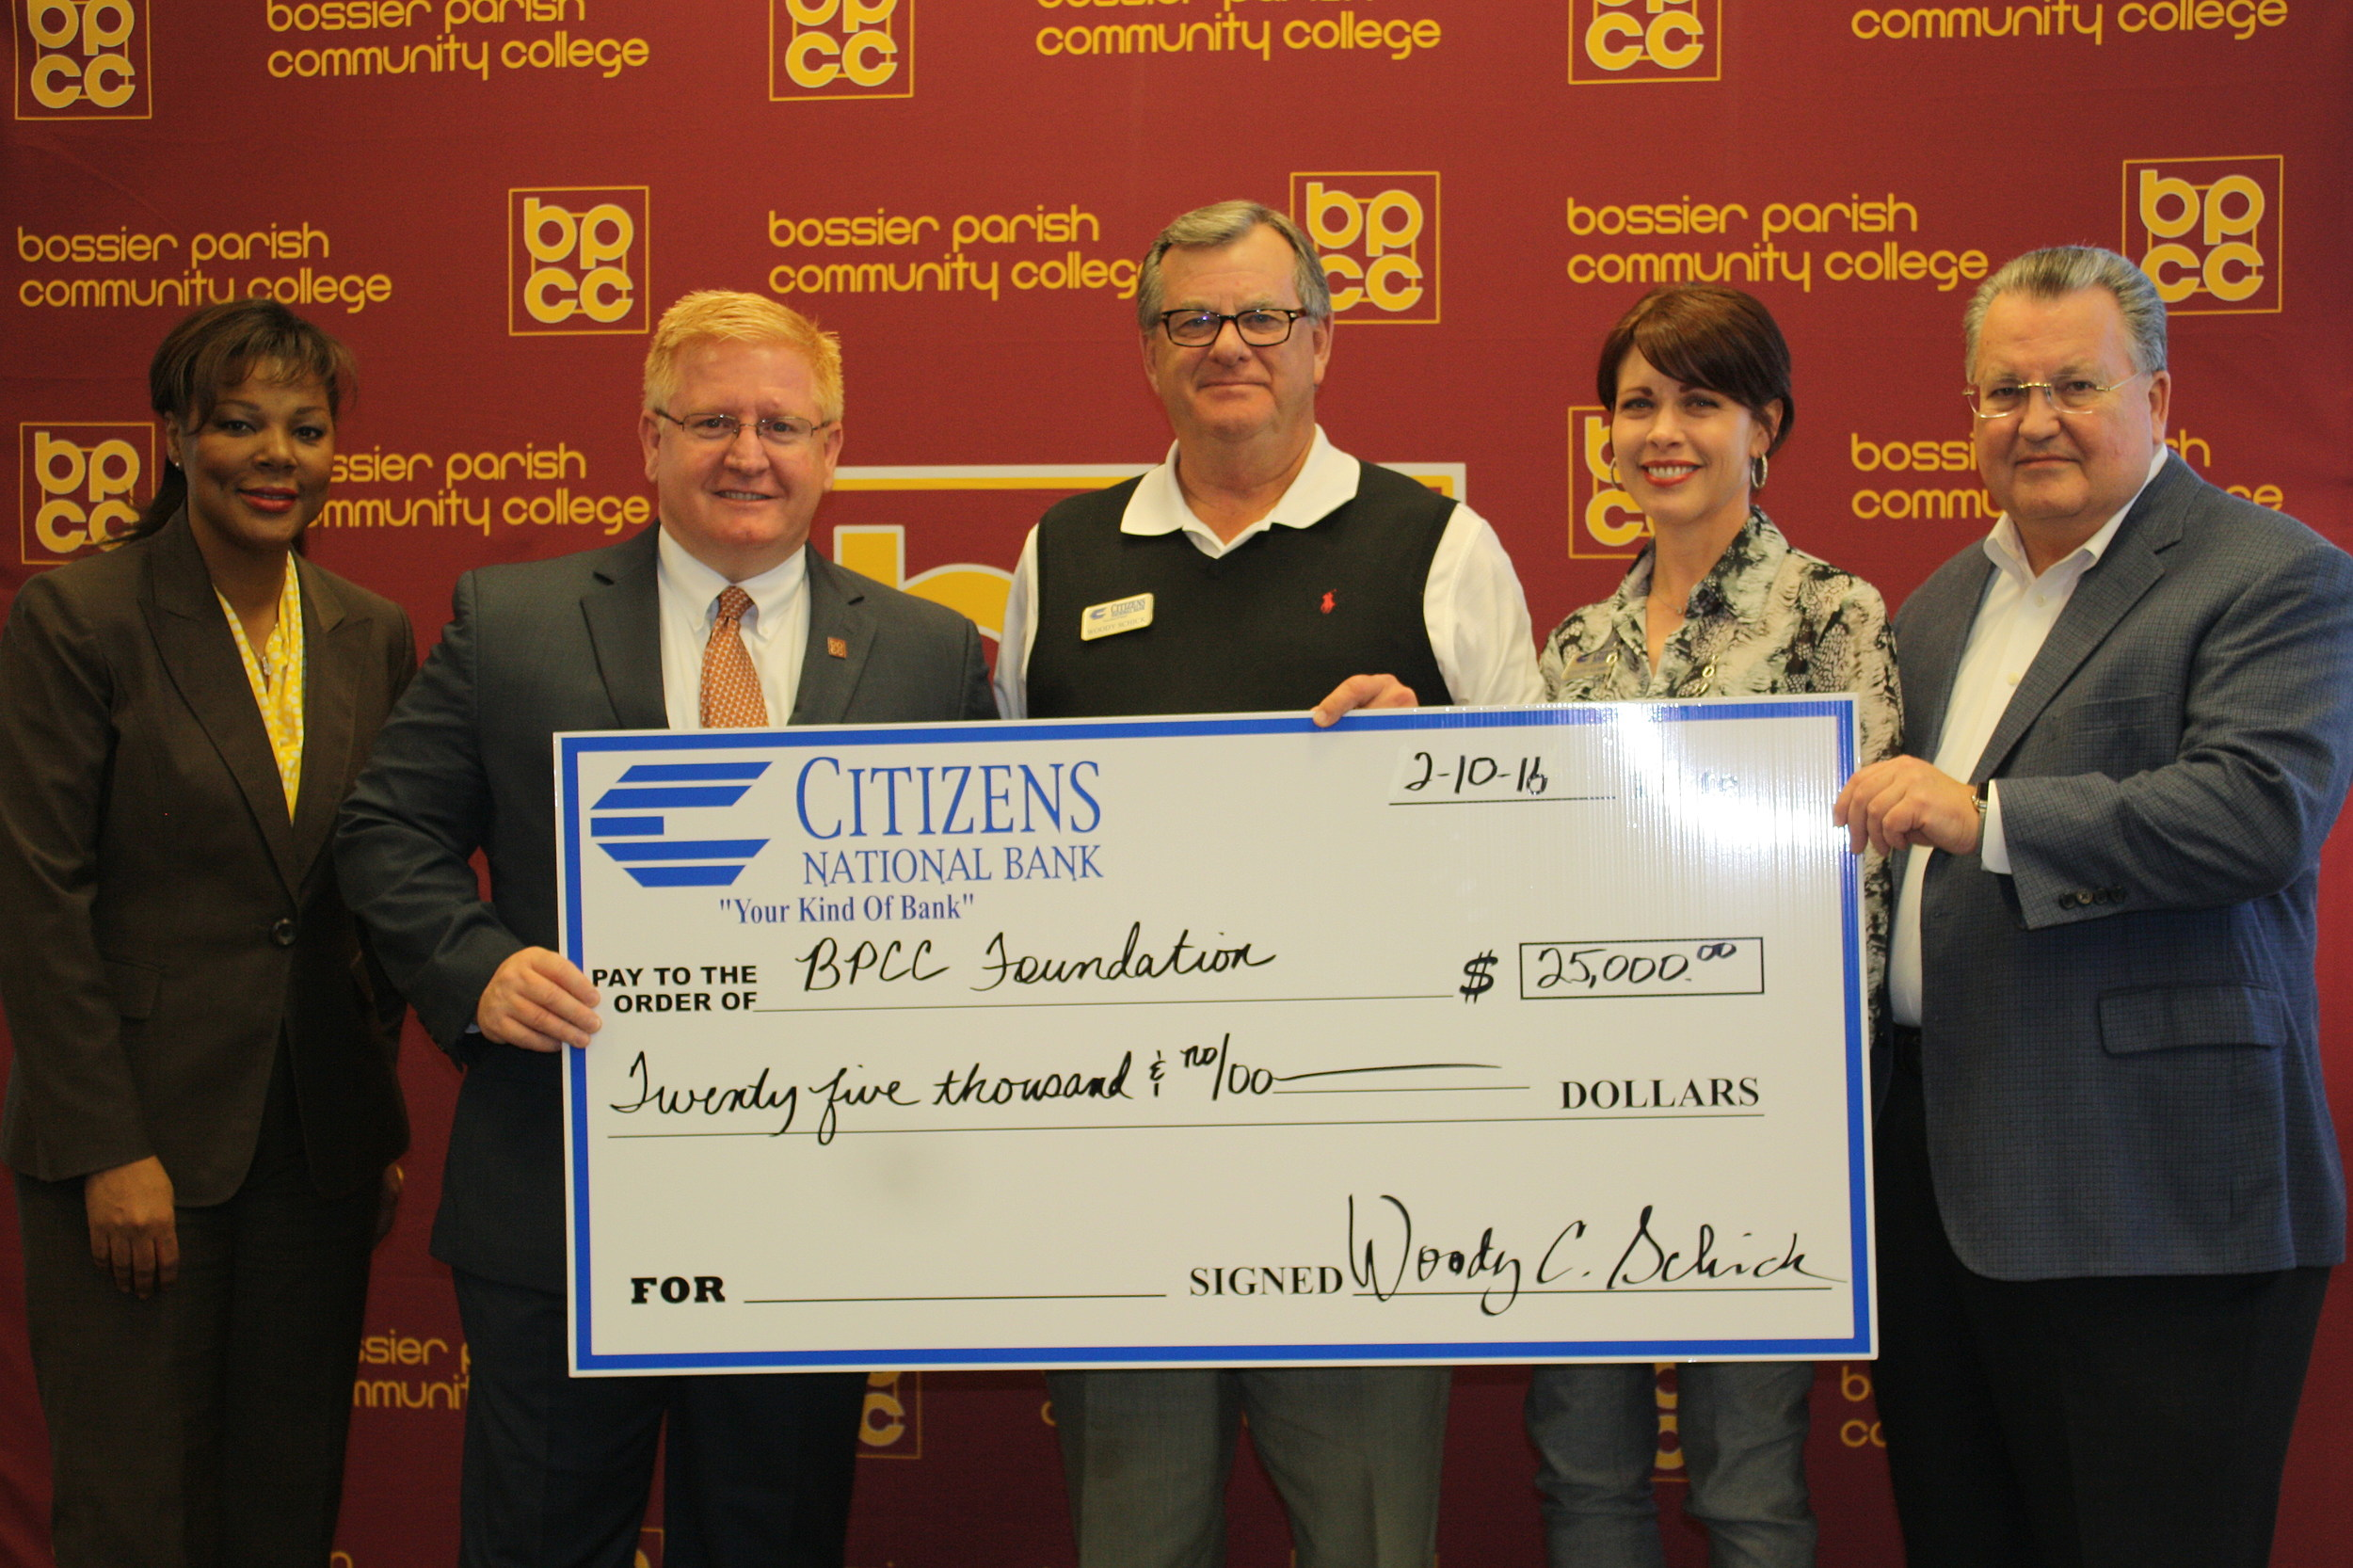 Photo Credit - BPCC <em>BPCC Chancellor Dr. Rick Bateman, Jr. (second from left) receives a donation from Citizens National Bank President/CEO Woody Schick and Bank Marketing & Sales Officer Cindy Aubrey (third & fourth from left).  Also pictured: Stephanie Rogers, BPCC Foundation Director, and Bruce Roberts, BPCC Foundation Board President.  Photo Credit - BPCC